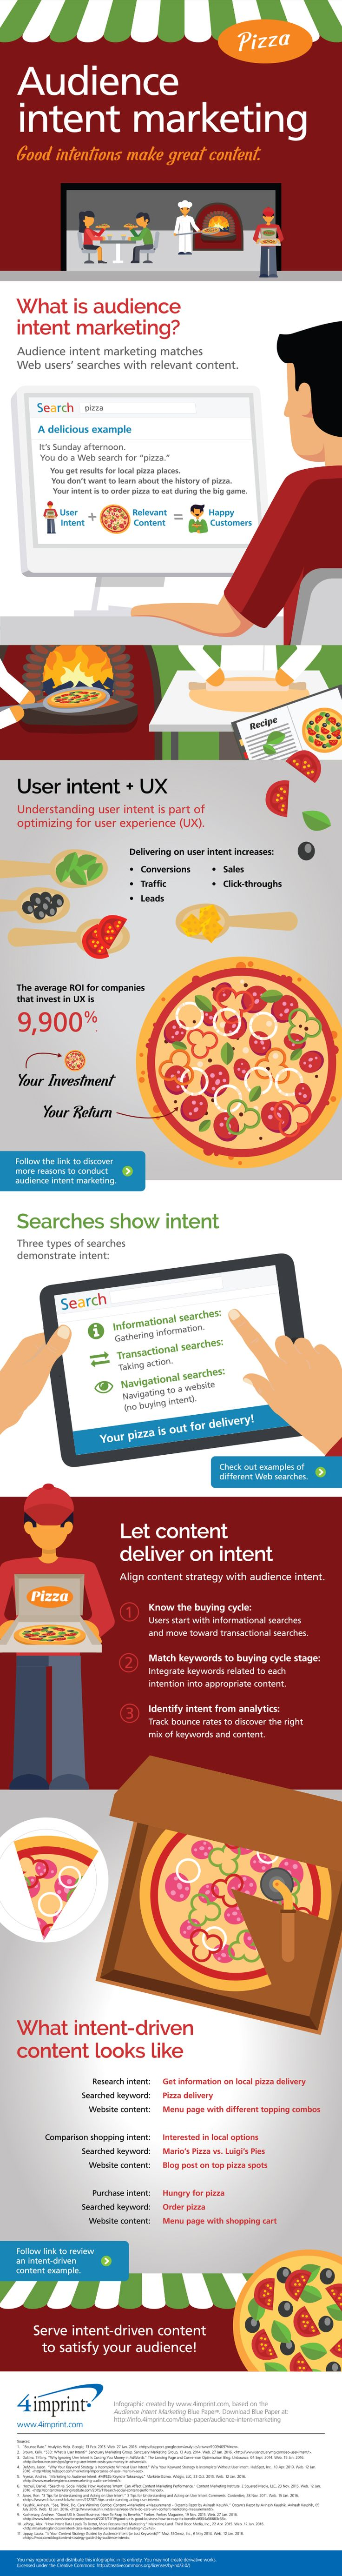 Audience intent marketing helps businesses deliver relevant content to customers. Understanding user intent is part of optimizing for user experience (UX), which supports customer retention. This infographic covers the different types of customer intent and explains how to develop Web content that customers expect to find in search results.